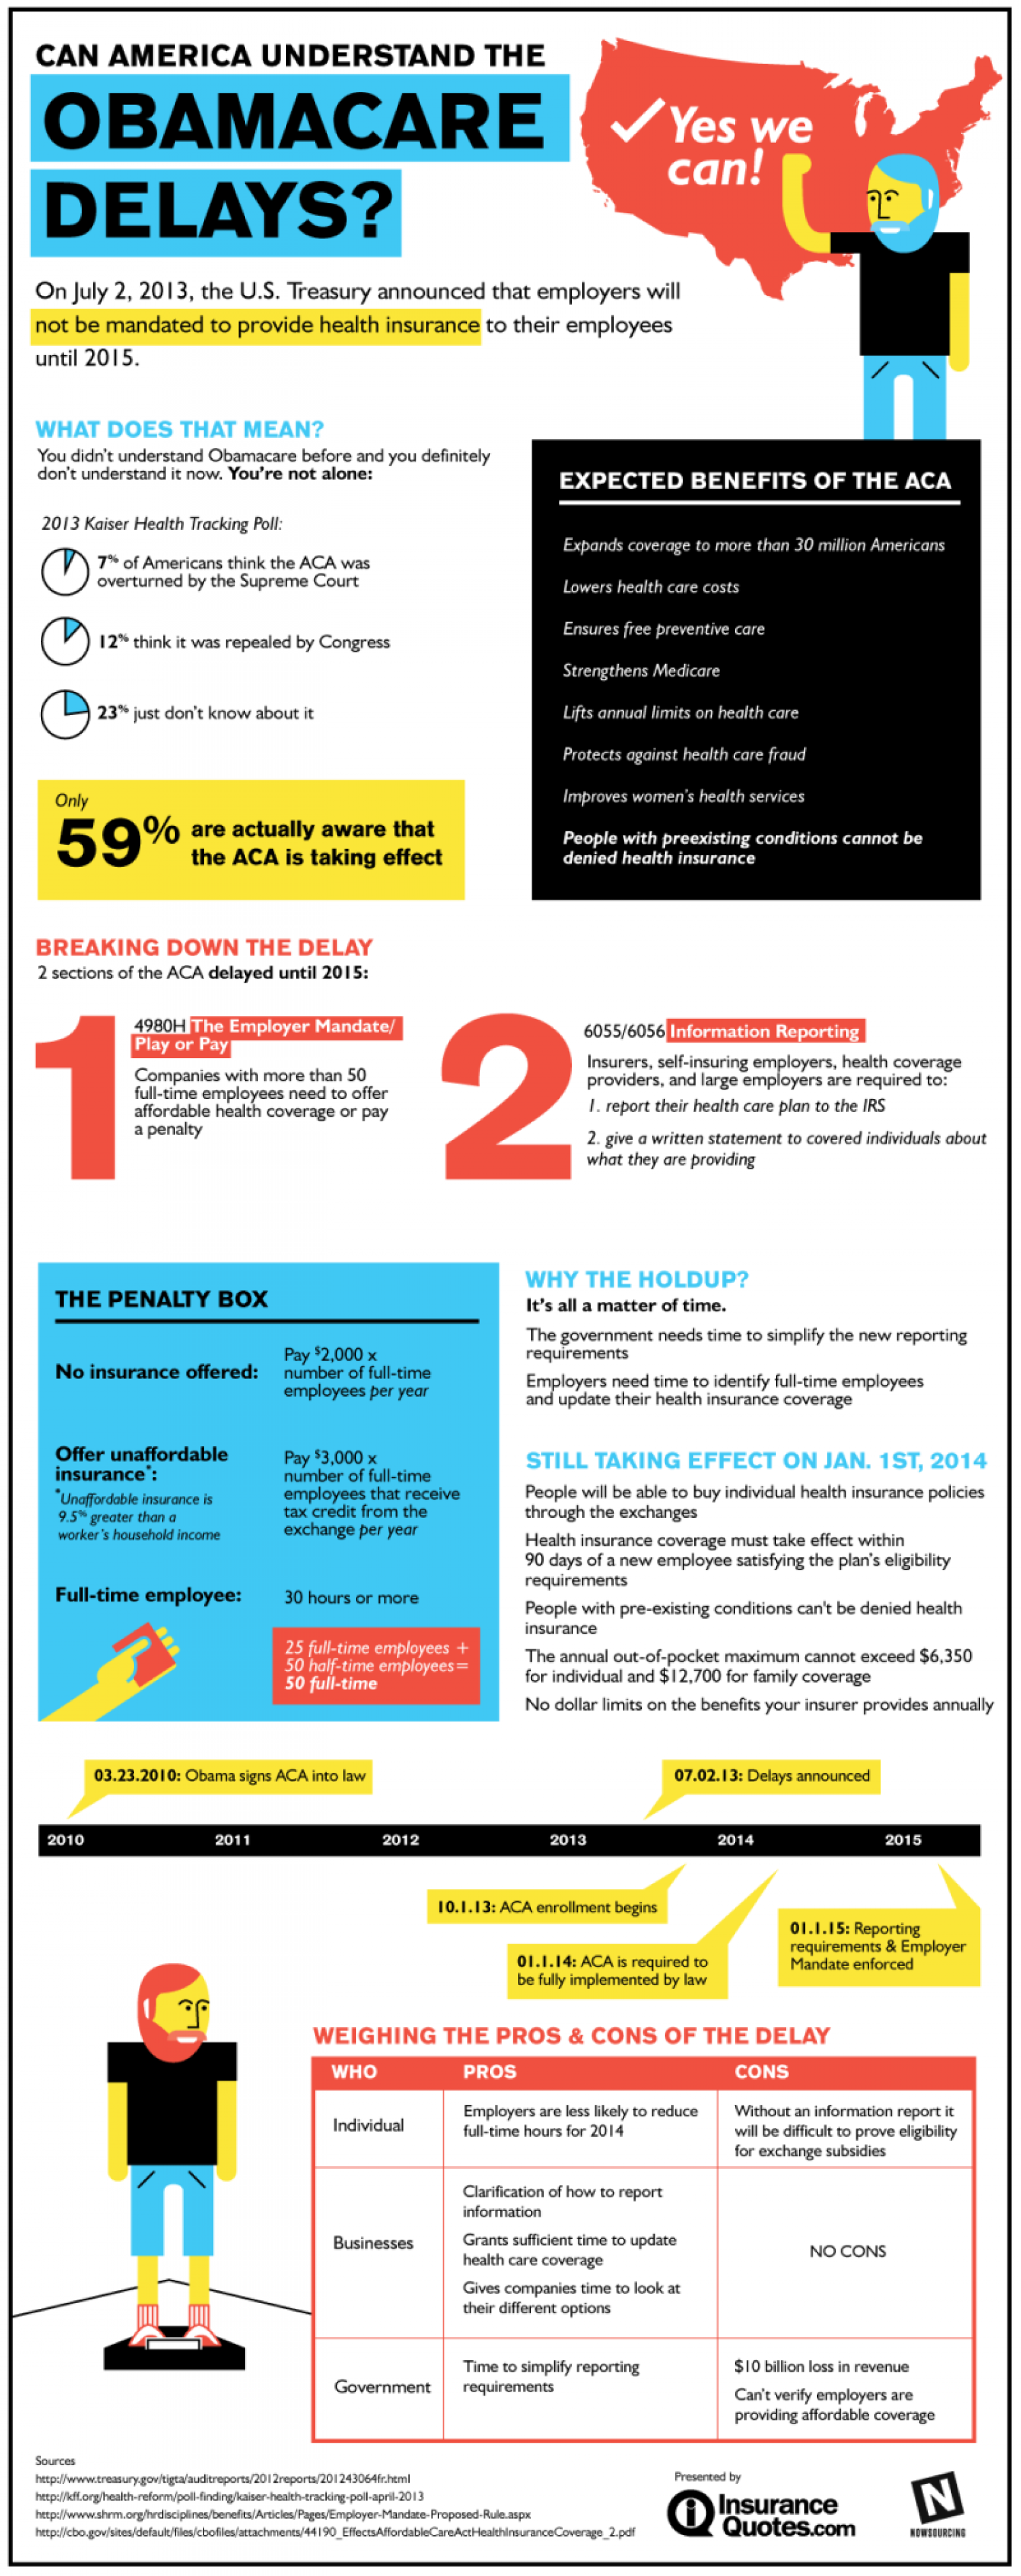 Can America Understand the Obamacare Delays? Infographic